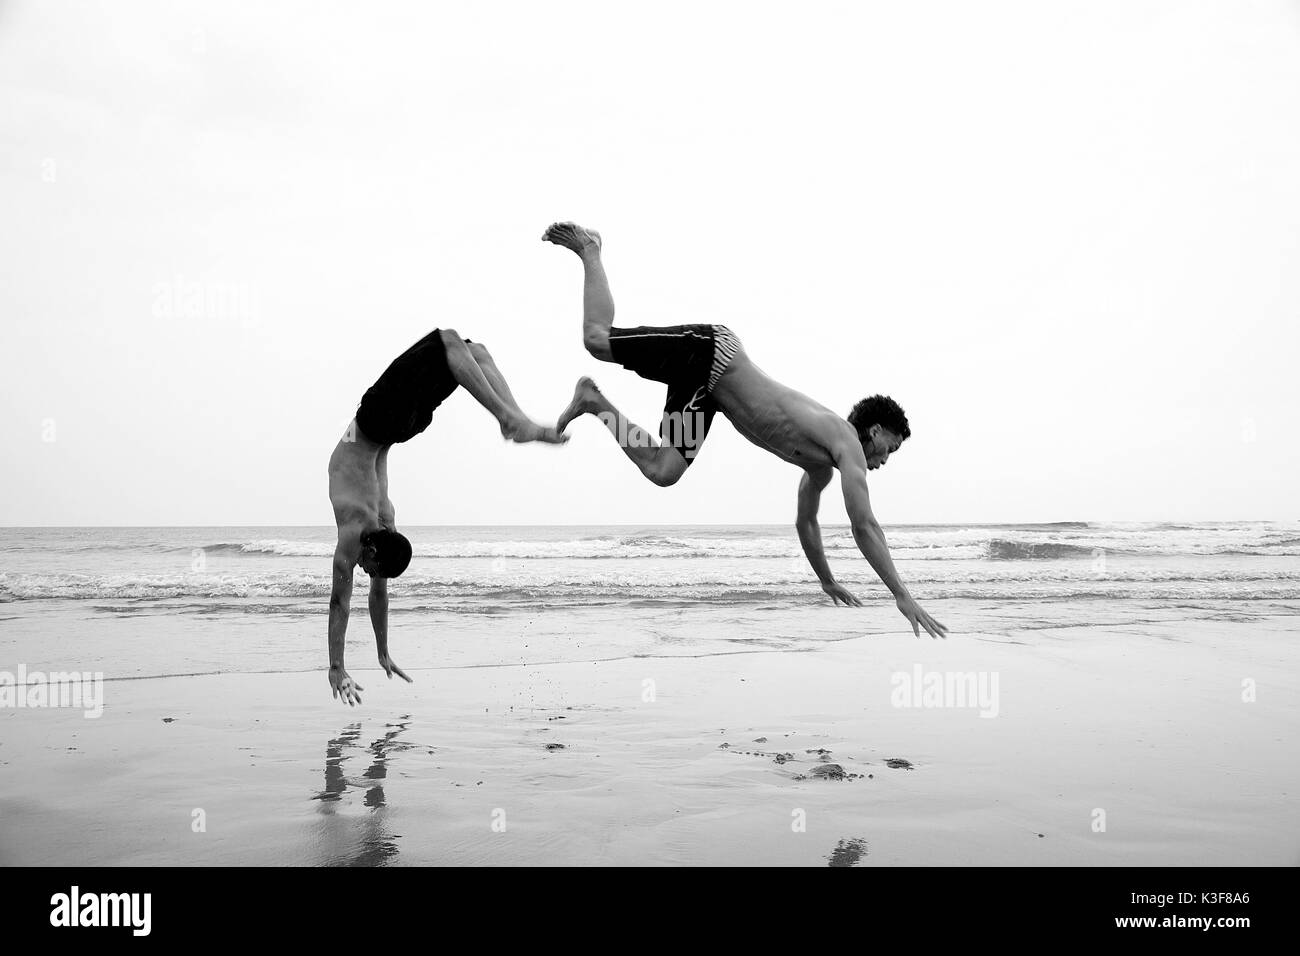 Two Young Men Jumping on Beach - Stock Image